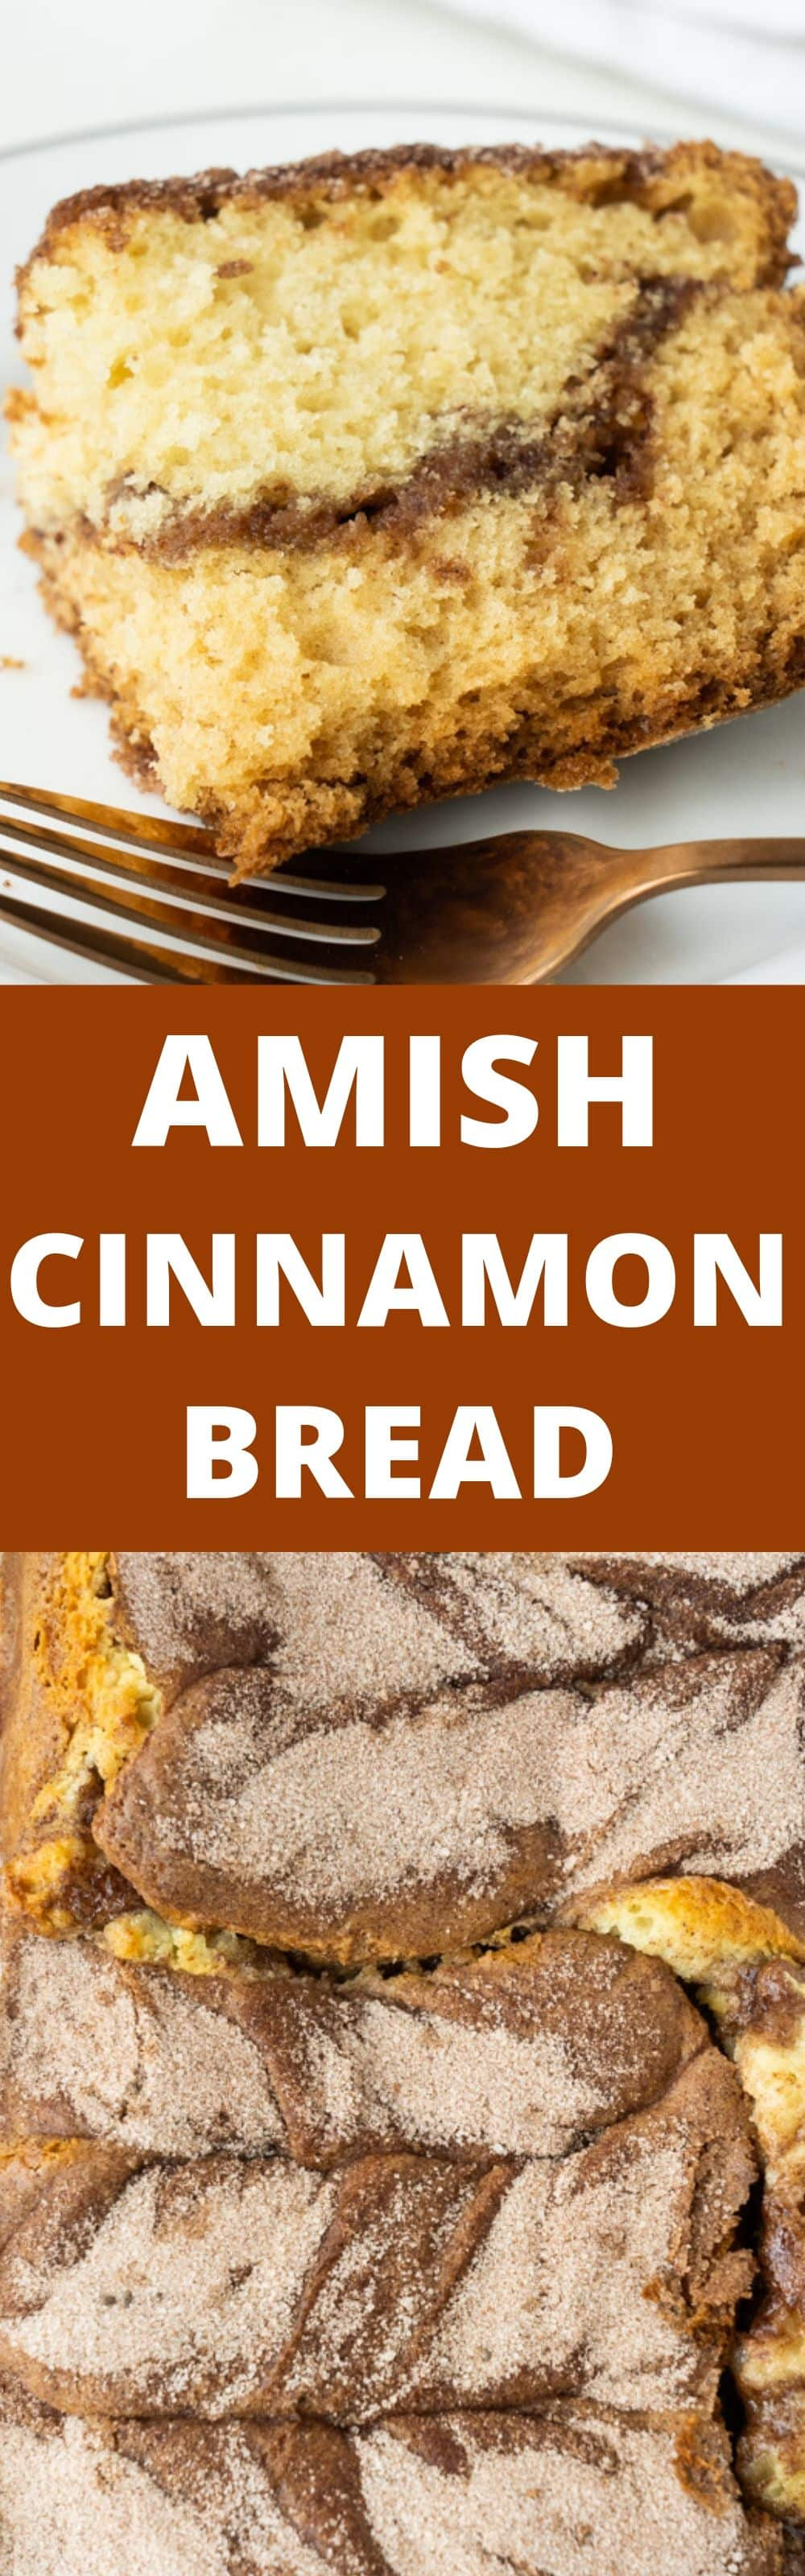 Tender and moist with sweet cinnamon and sugar permeating every crumb, this Amish Cinnamon Bread is not the sort of recipe that one casually bakes and leaves on the counter unattended. It makes for such a delicious treat for brunch or as a snack. It's also perfect for holiday (or anytime) gift giving!